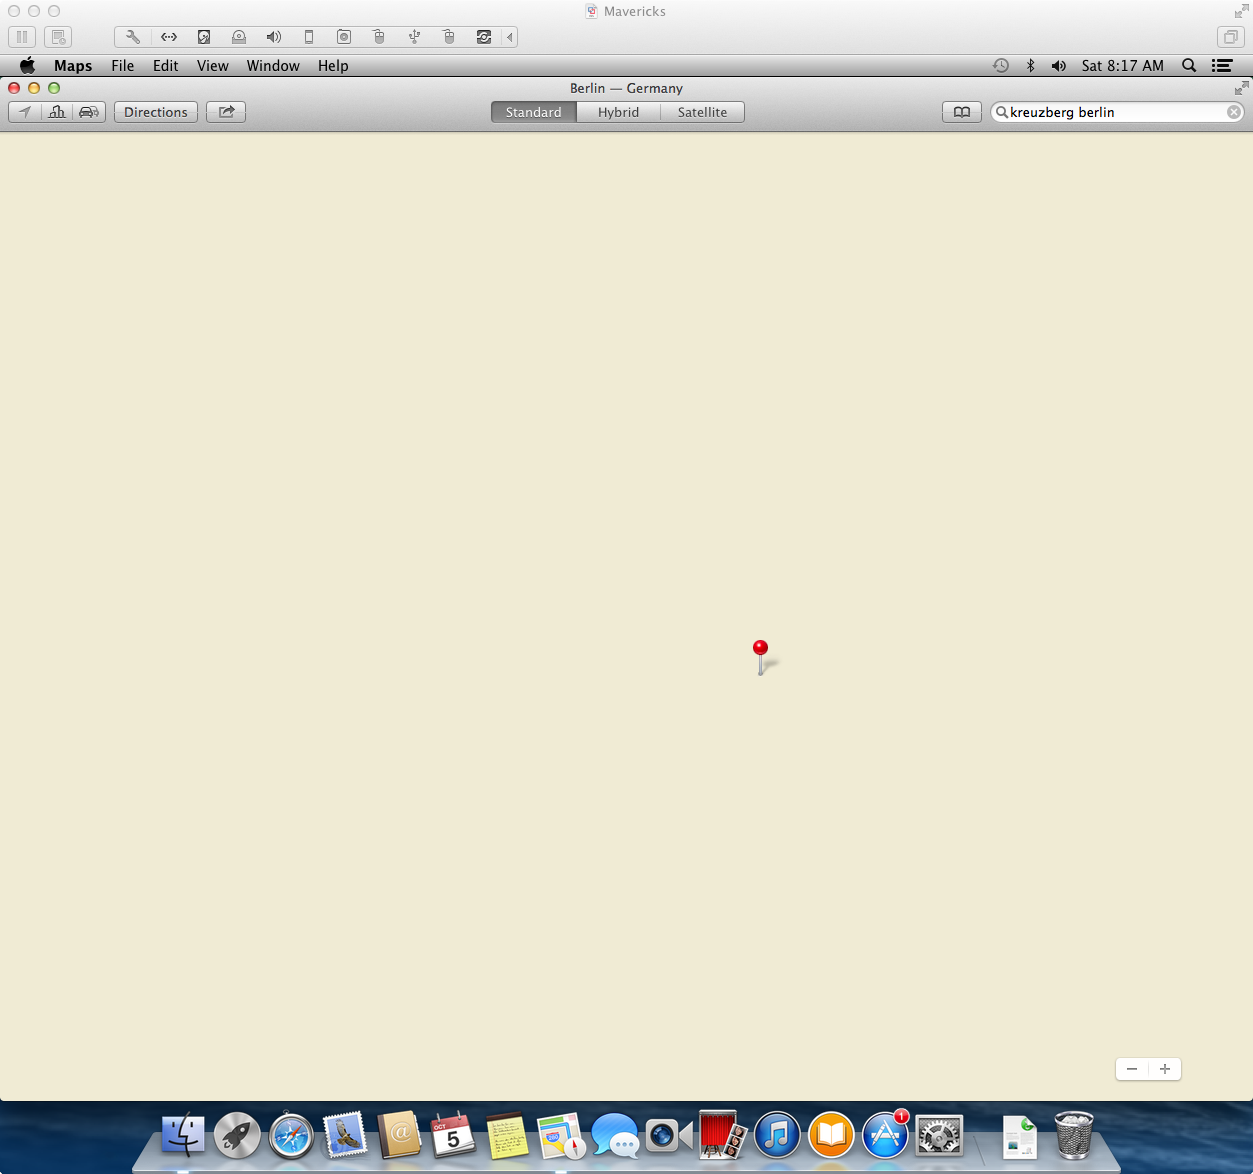 VMware Fusion. Obligatory Apple maps joke here.